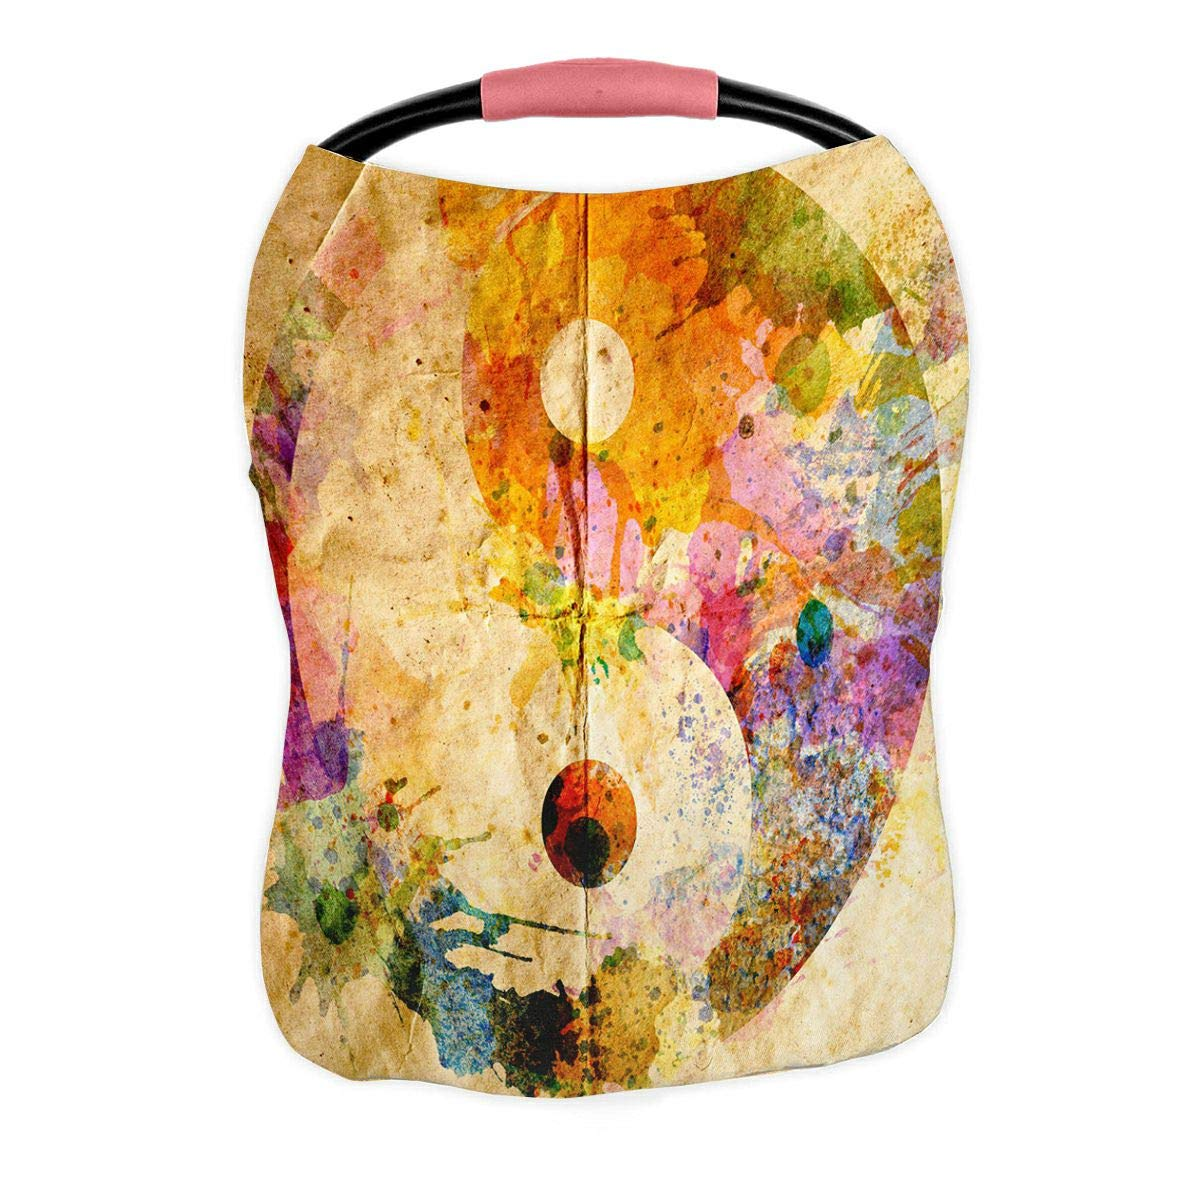 ABPHQTO Watercolor Yin Yang Symbol Nursing Cover Baby Breastfeeding Infant Feeding Cover Baby Car Seat Cover Infant Stroller Cover Carseat Canopy Breathable